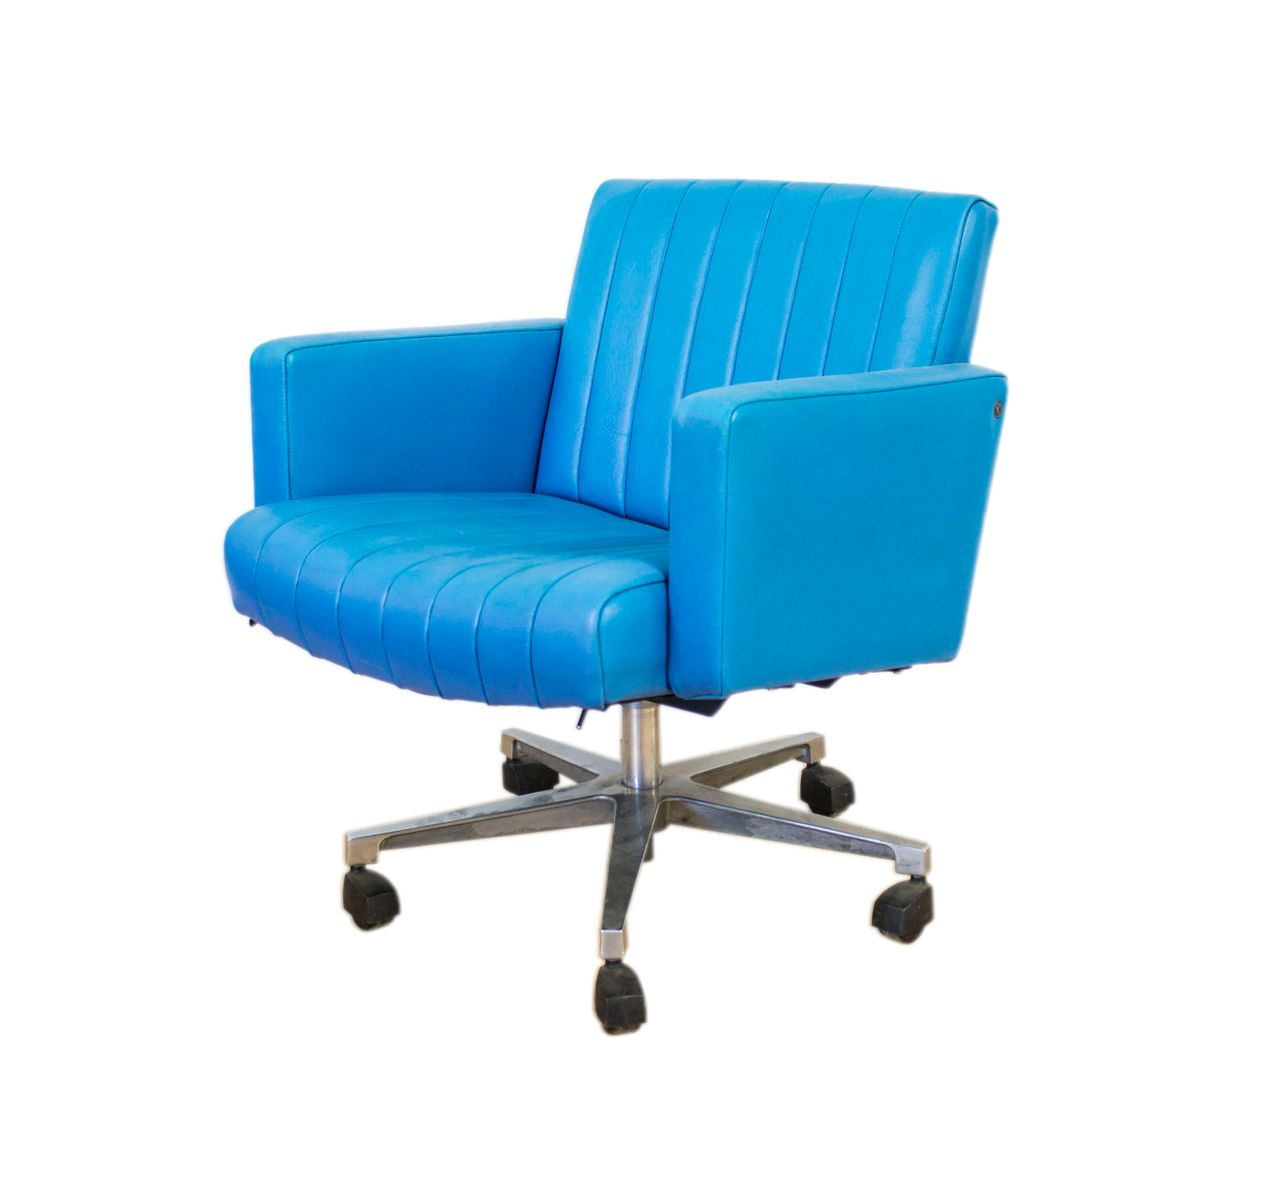 swivel office chair plans wooden table and chairs for kids australia vintage turquoise leather desk sale at pamono